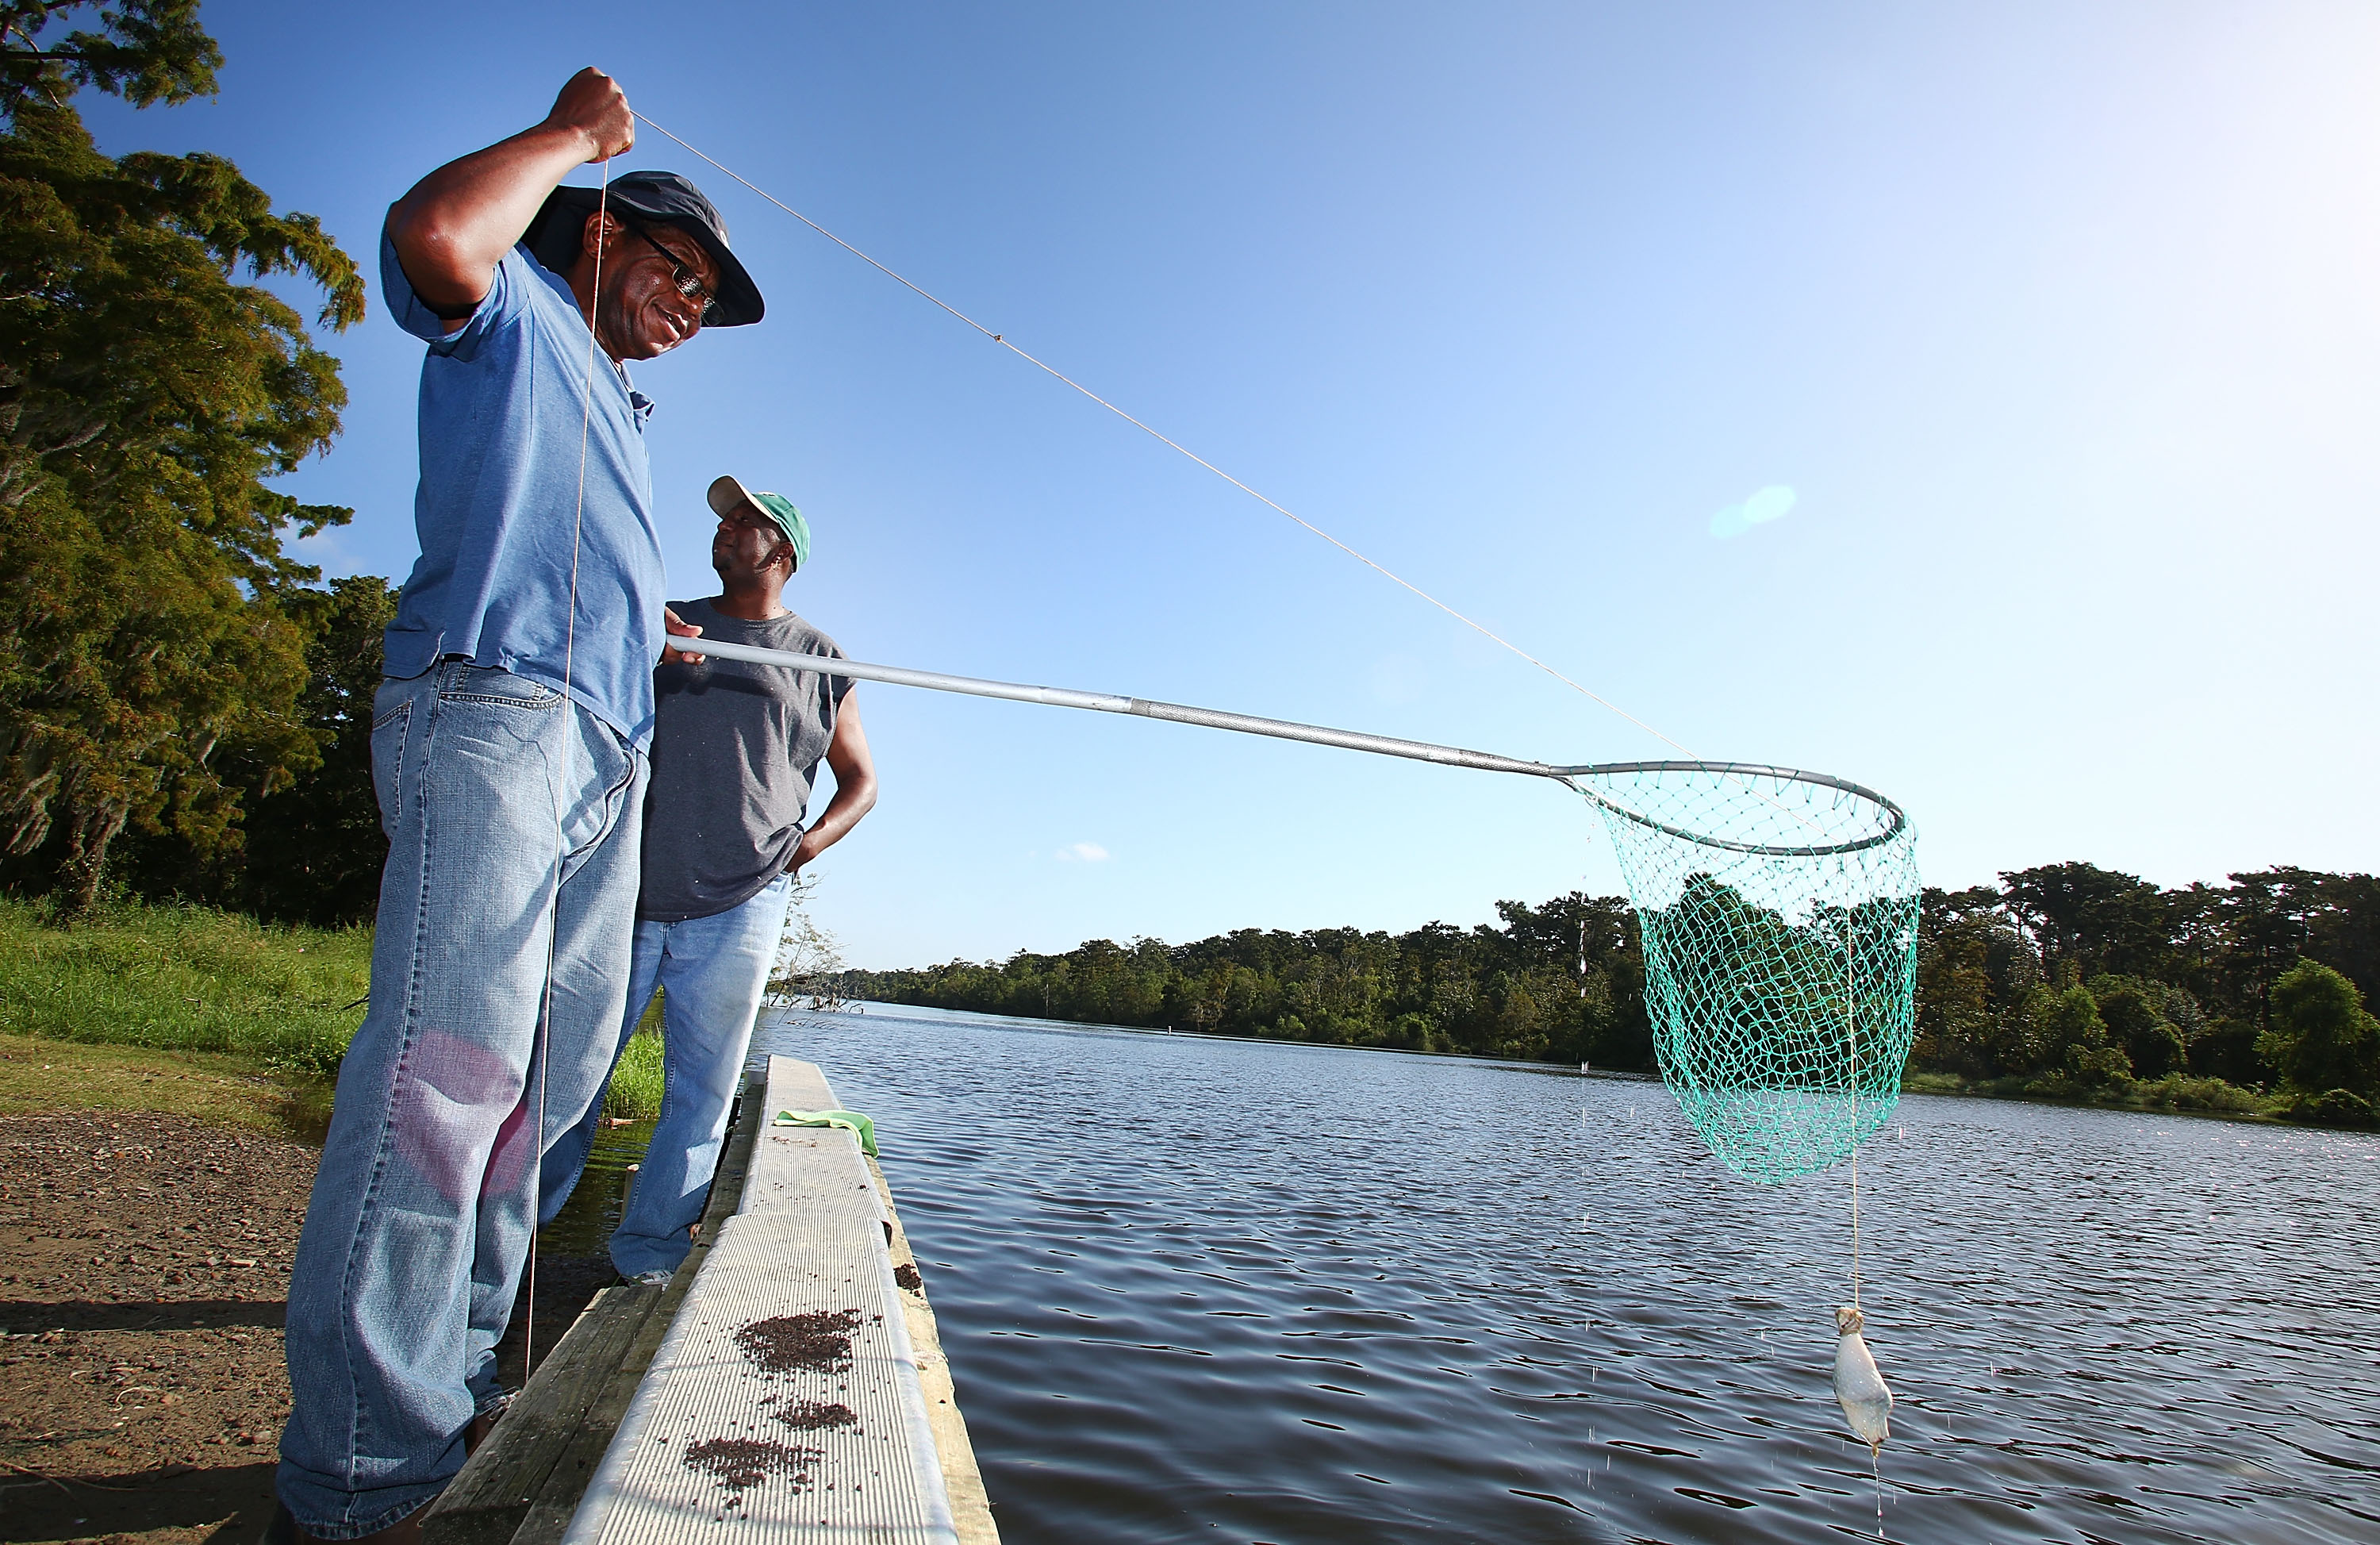 Mike Coleman and Jarad Williams check their crab traps on October 4, 2013 in Grand Isle, Louisiana.